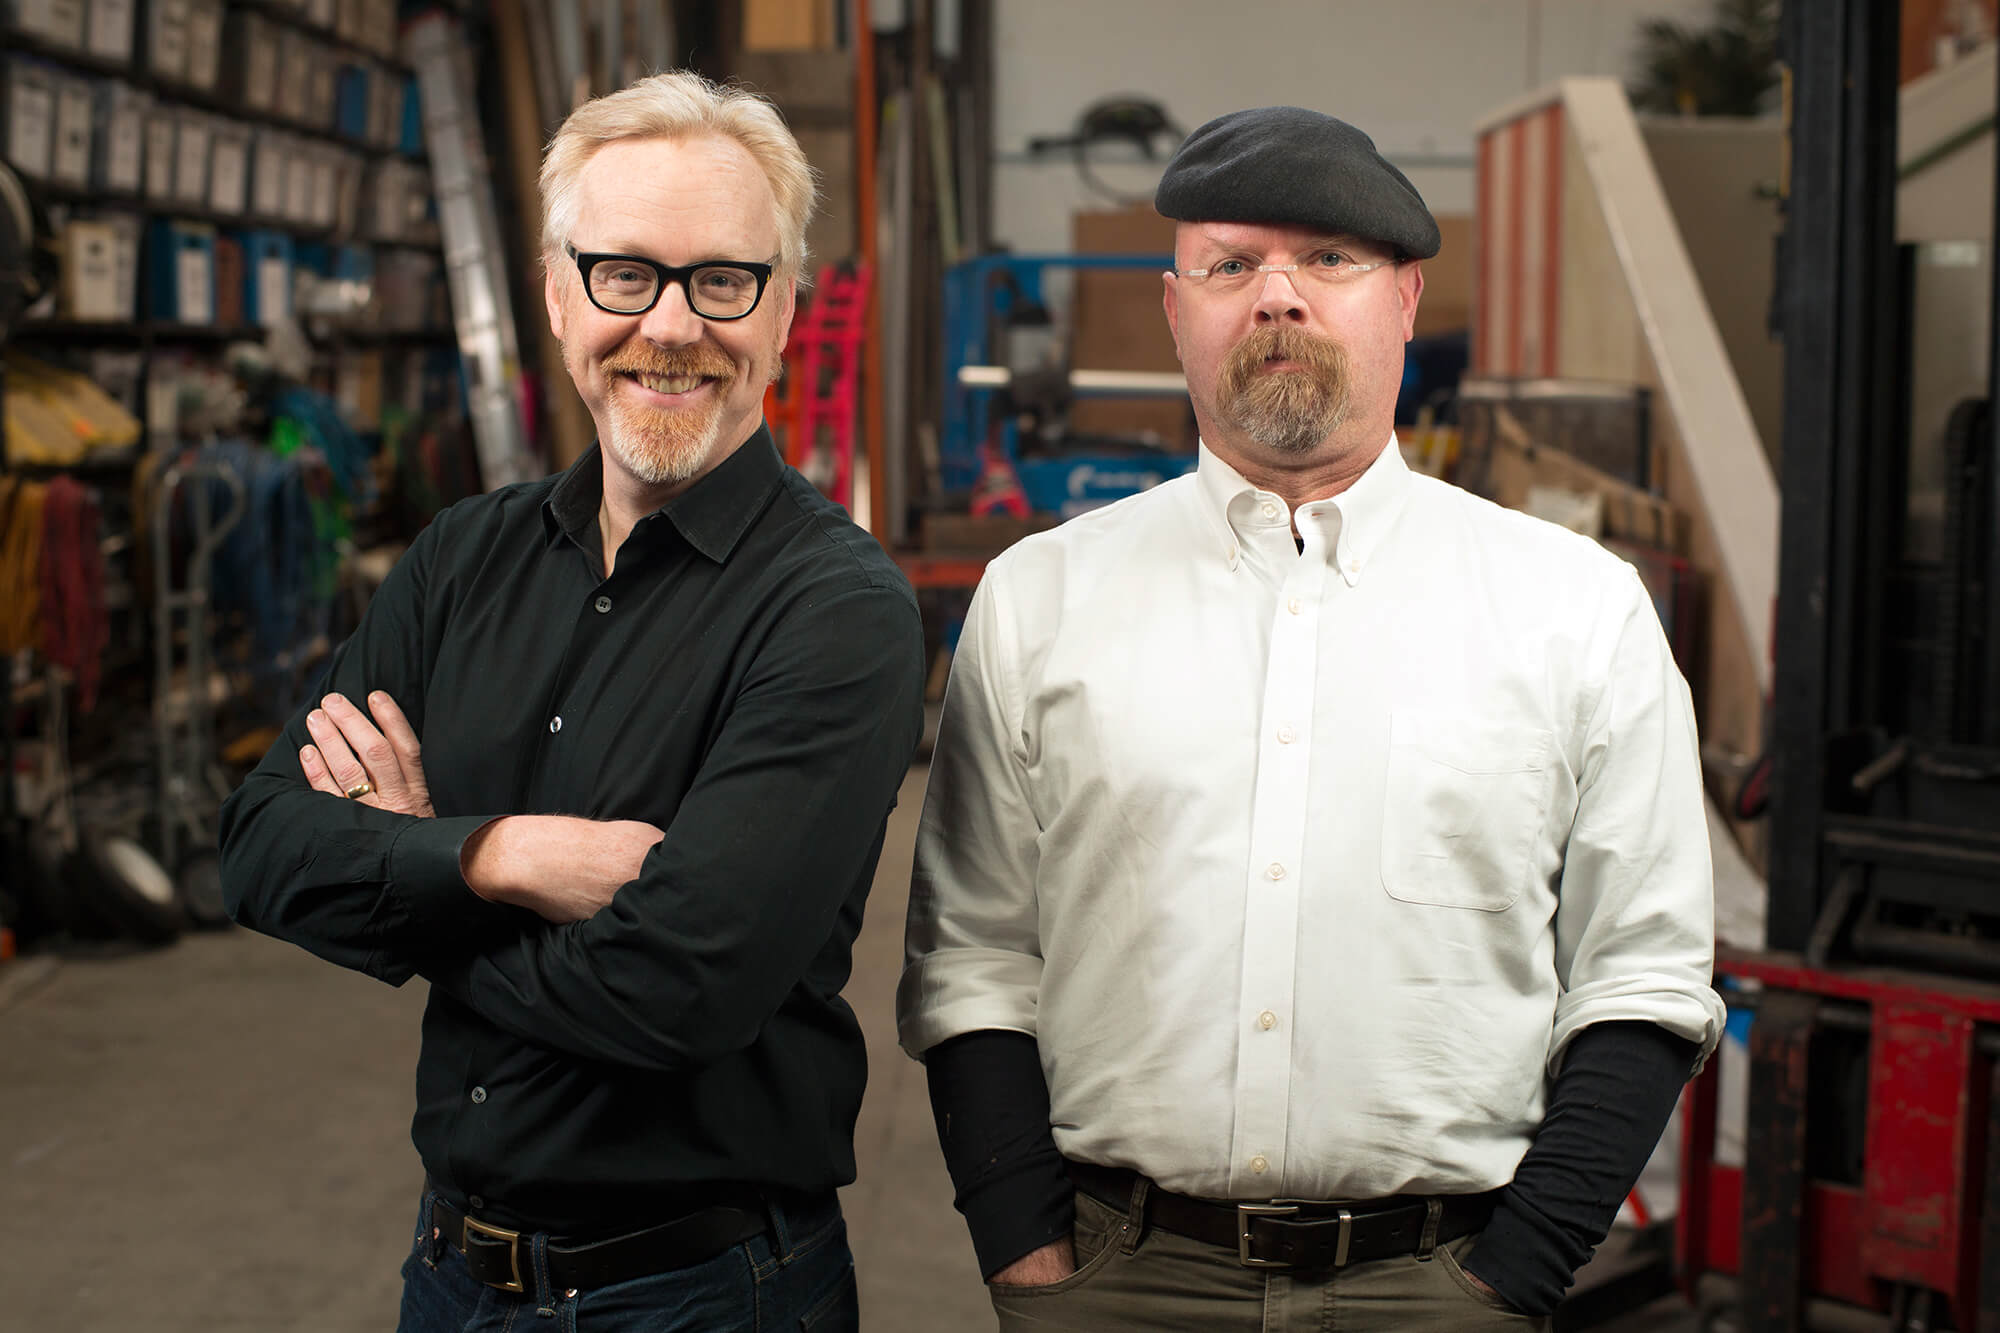 Simple Mythbusters Watch Free Documentary Online Mythbusters Bamboo Torture Full Episode Mythbusters Ww2 Bamboo Torture houzz-03 Mythbusters Bamboo Torture